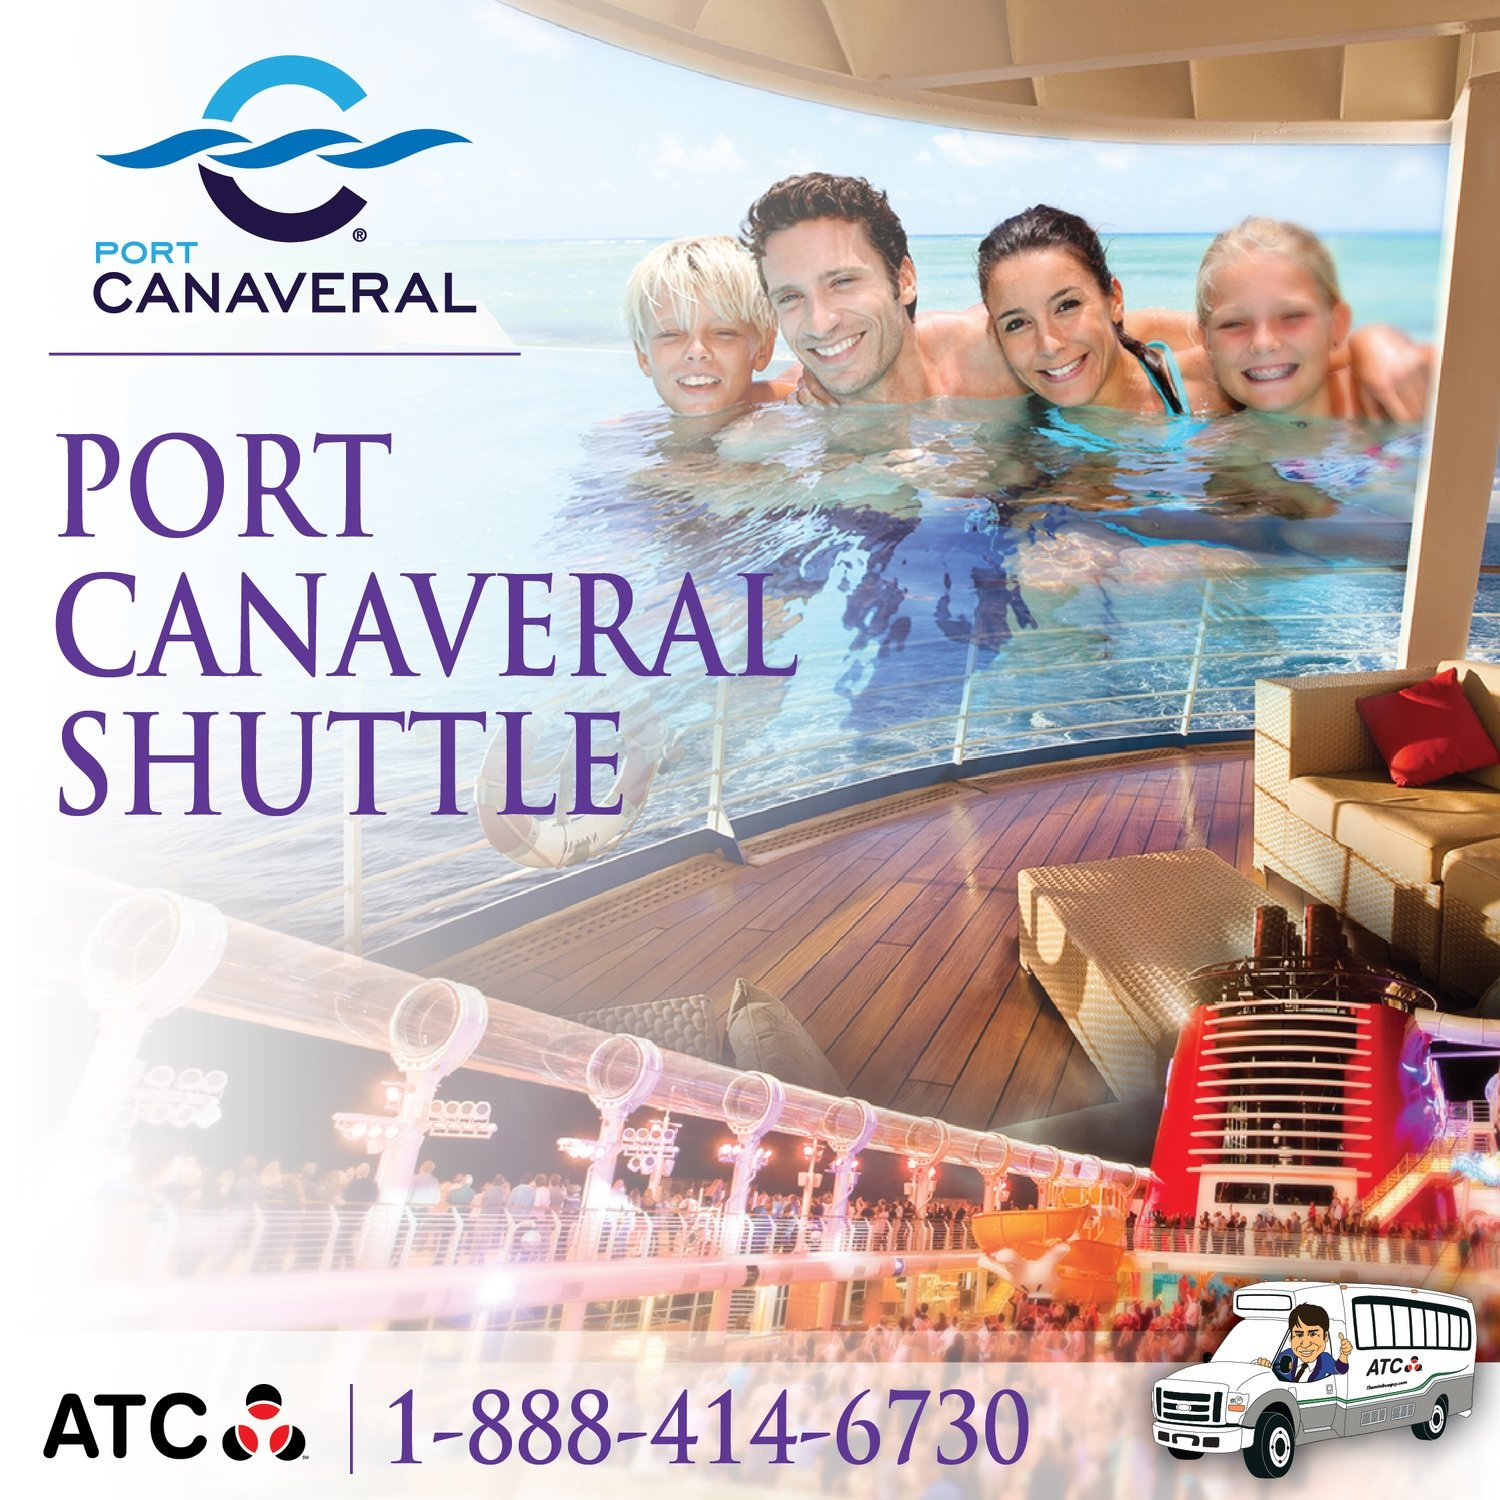 Orlando Airport Hotels to Port Canaveral ONE WAY